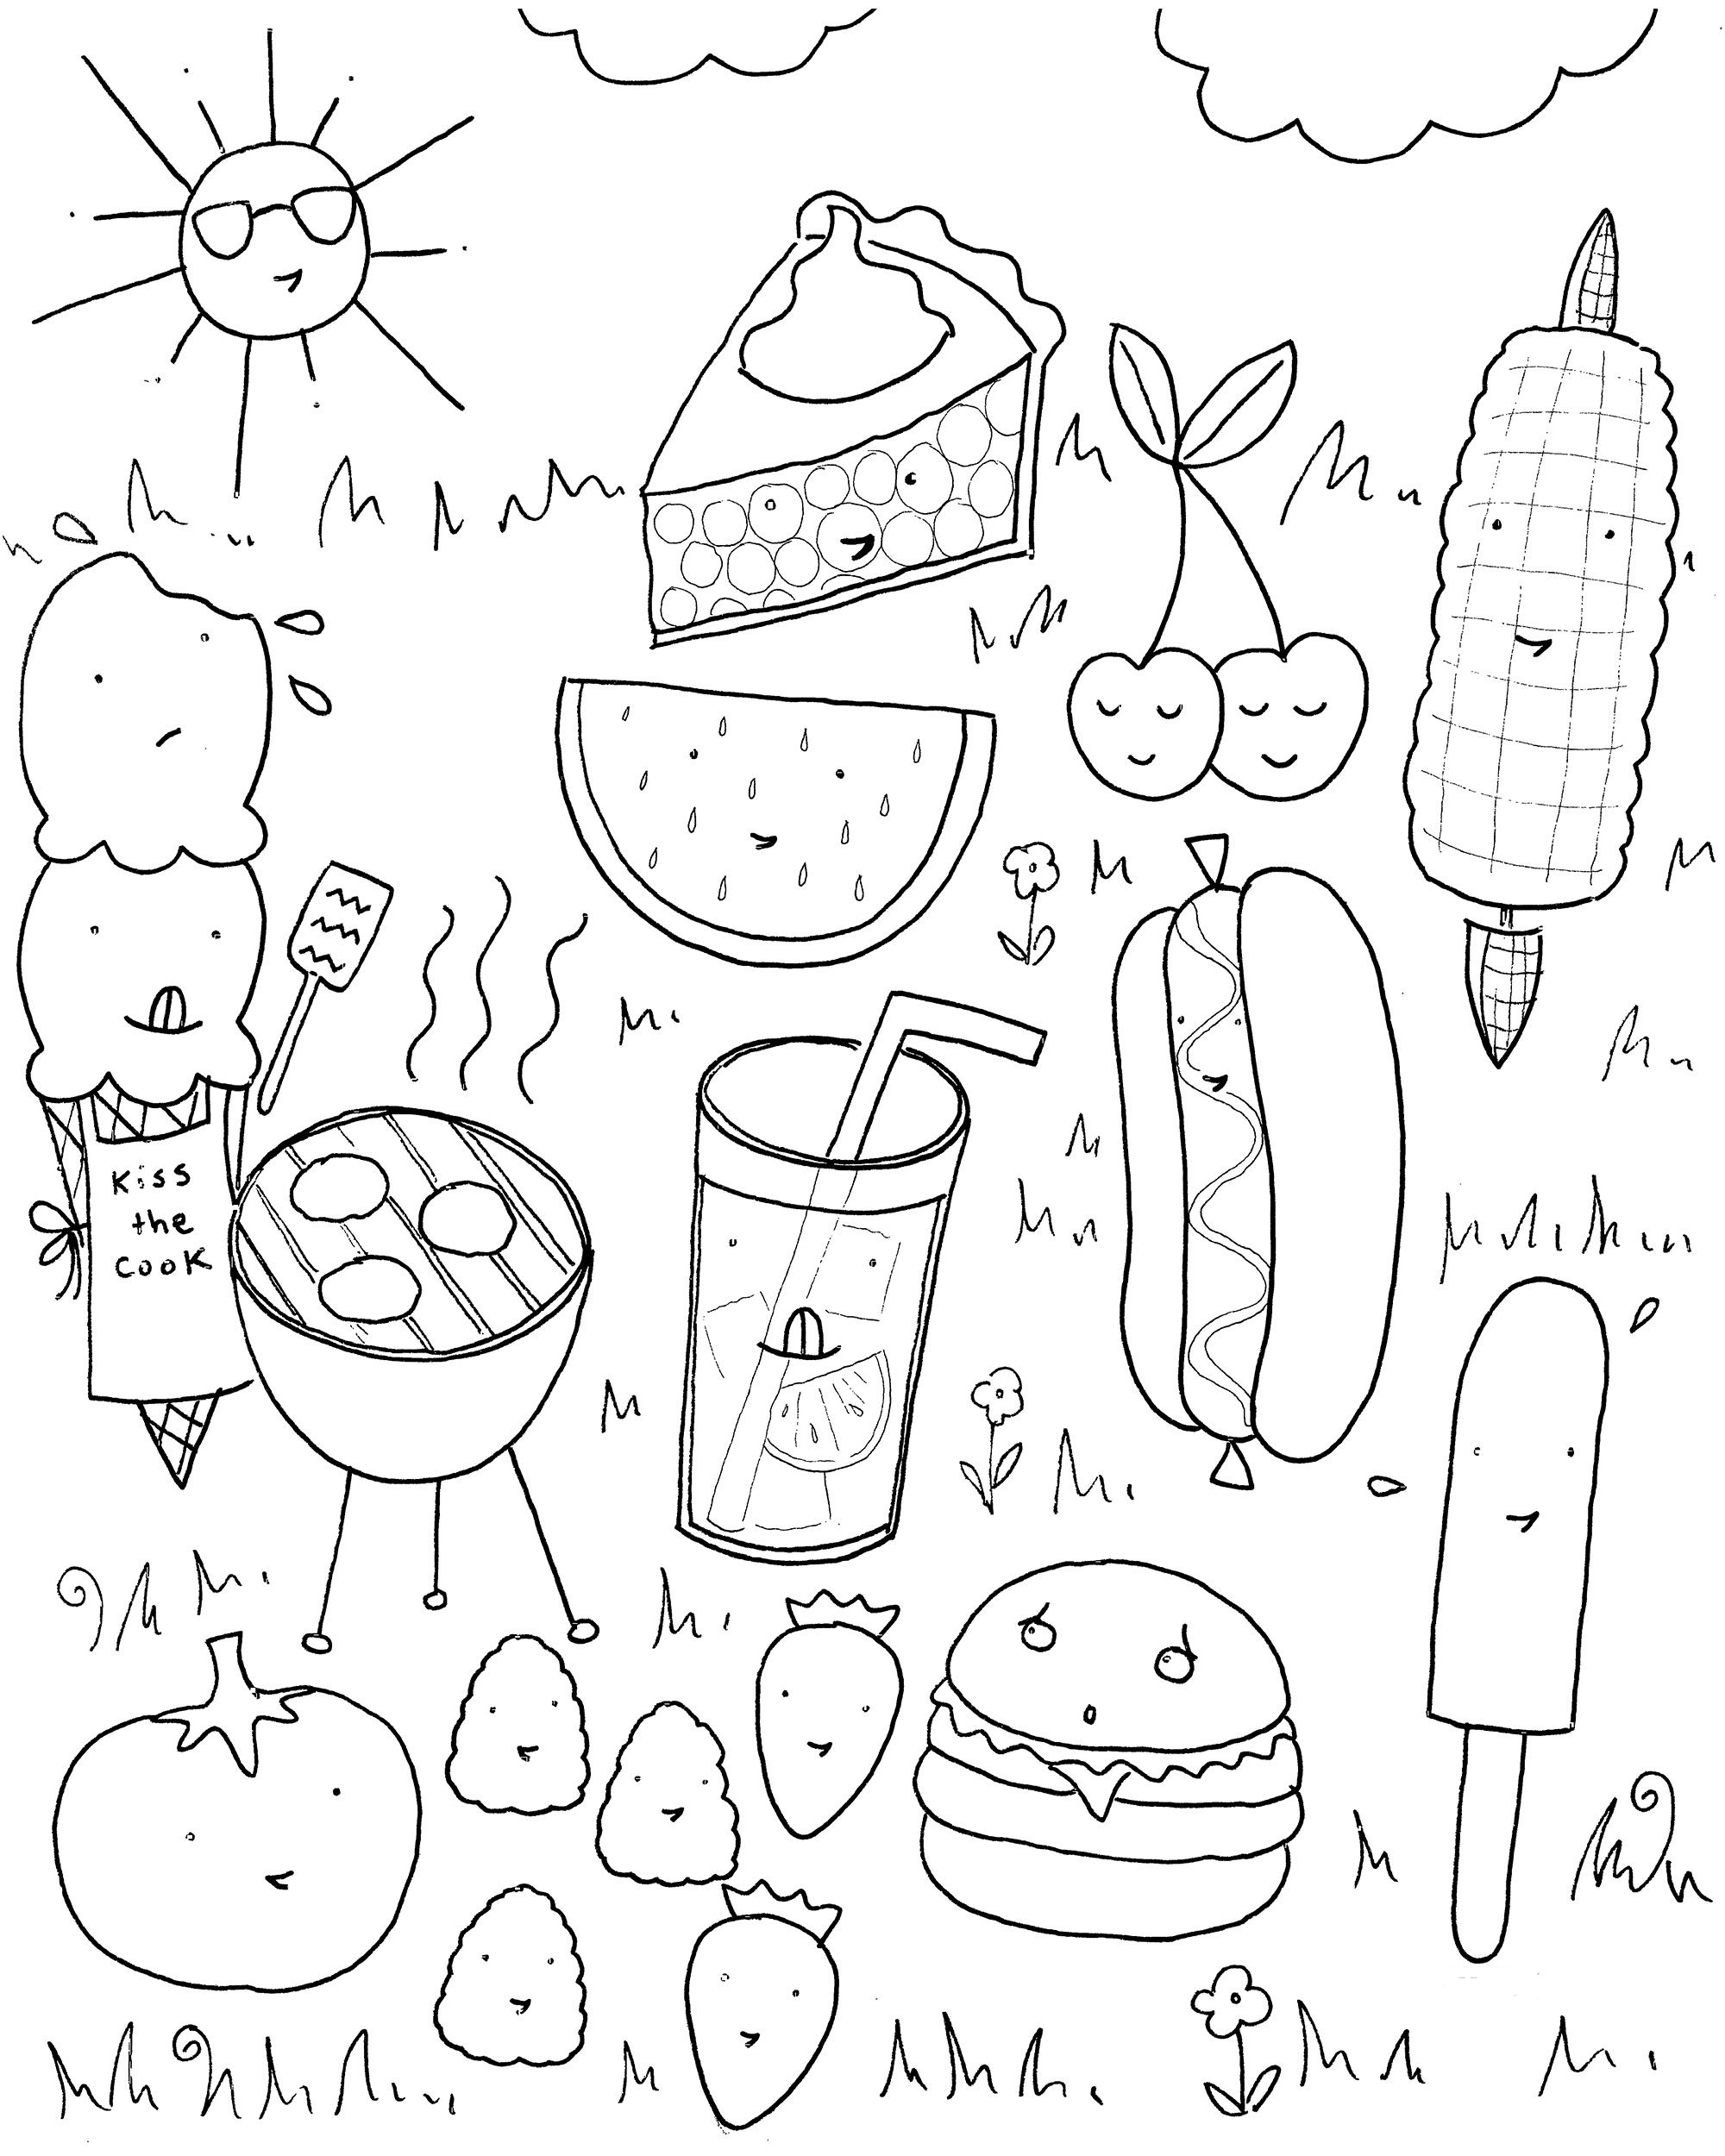 fun colouring pages for kids easy teen summer coloring pages woo jr kids activities kids fun pages for colouring